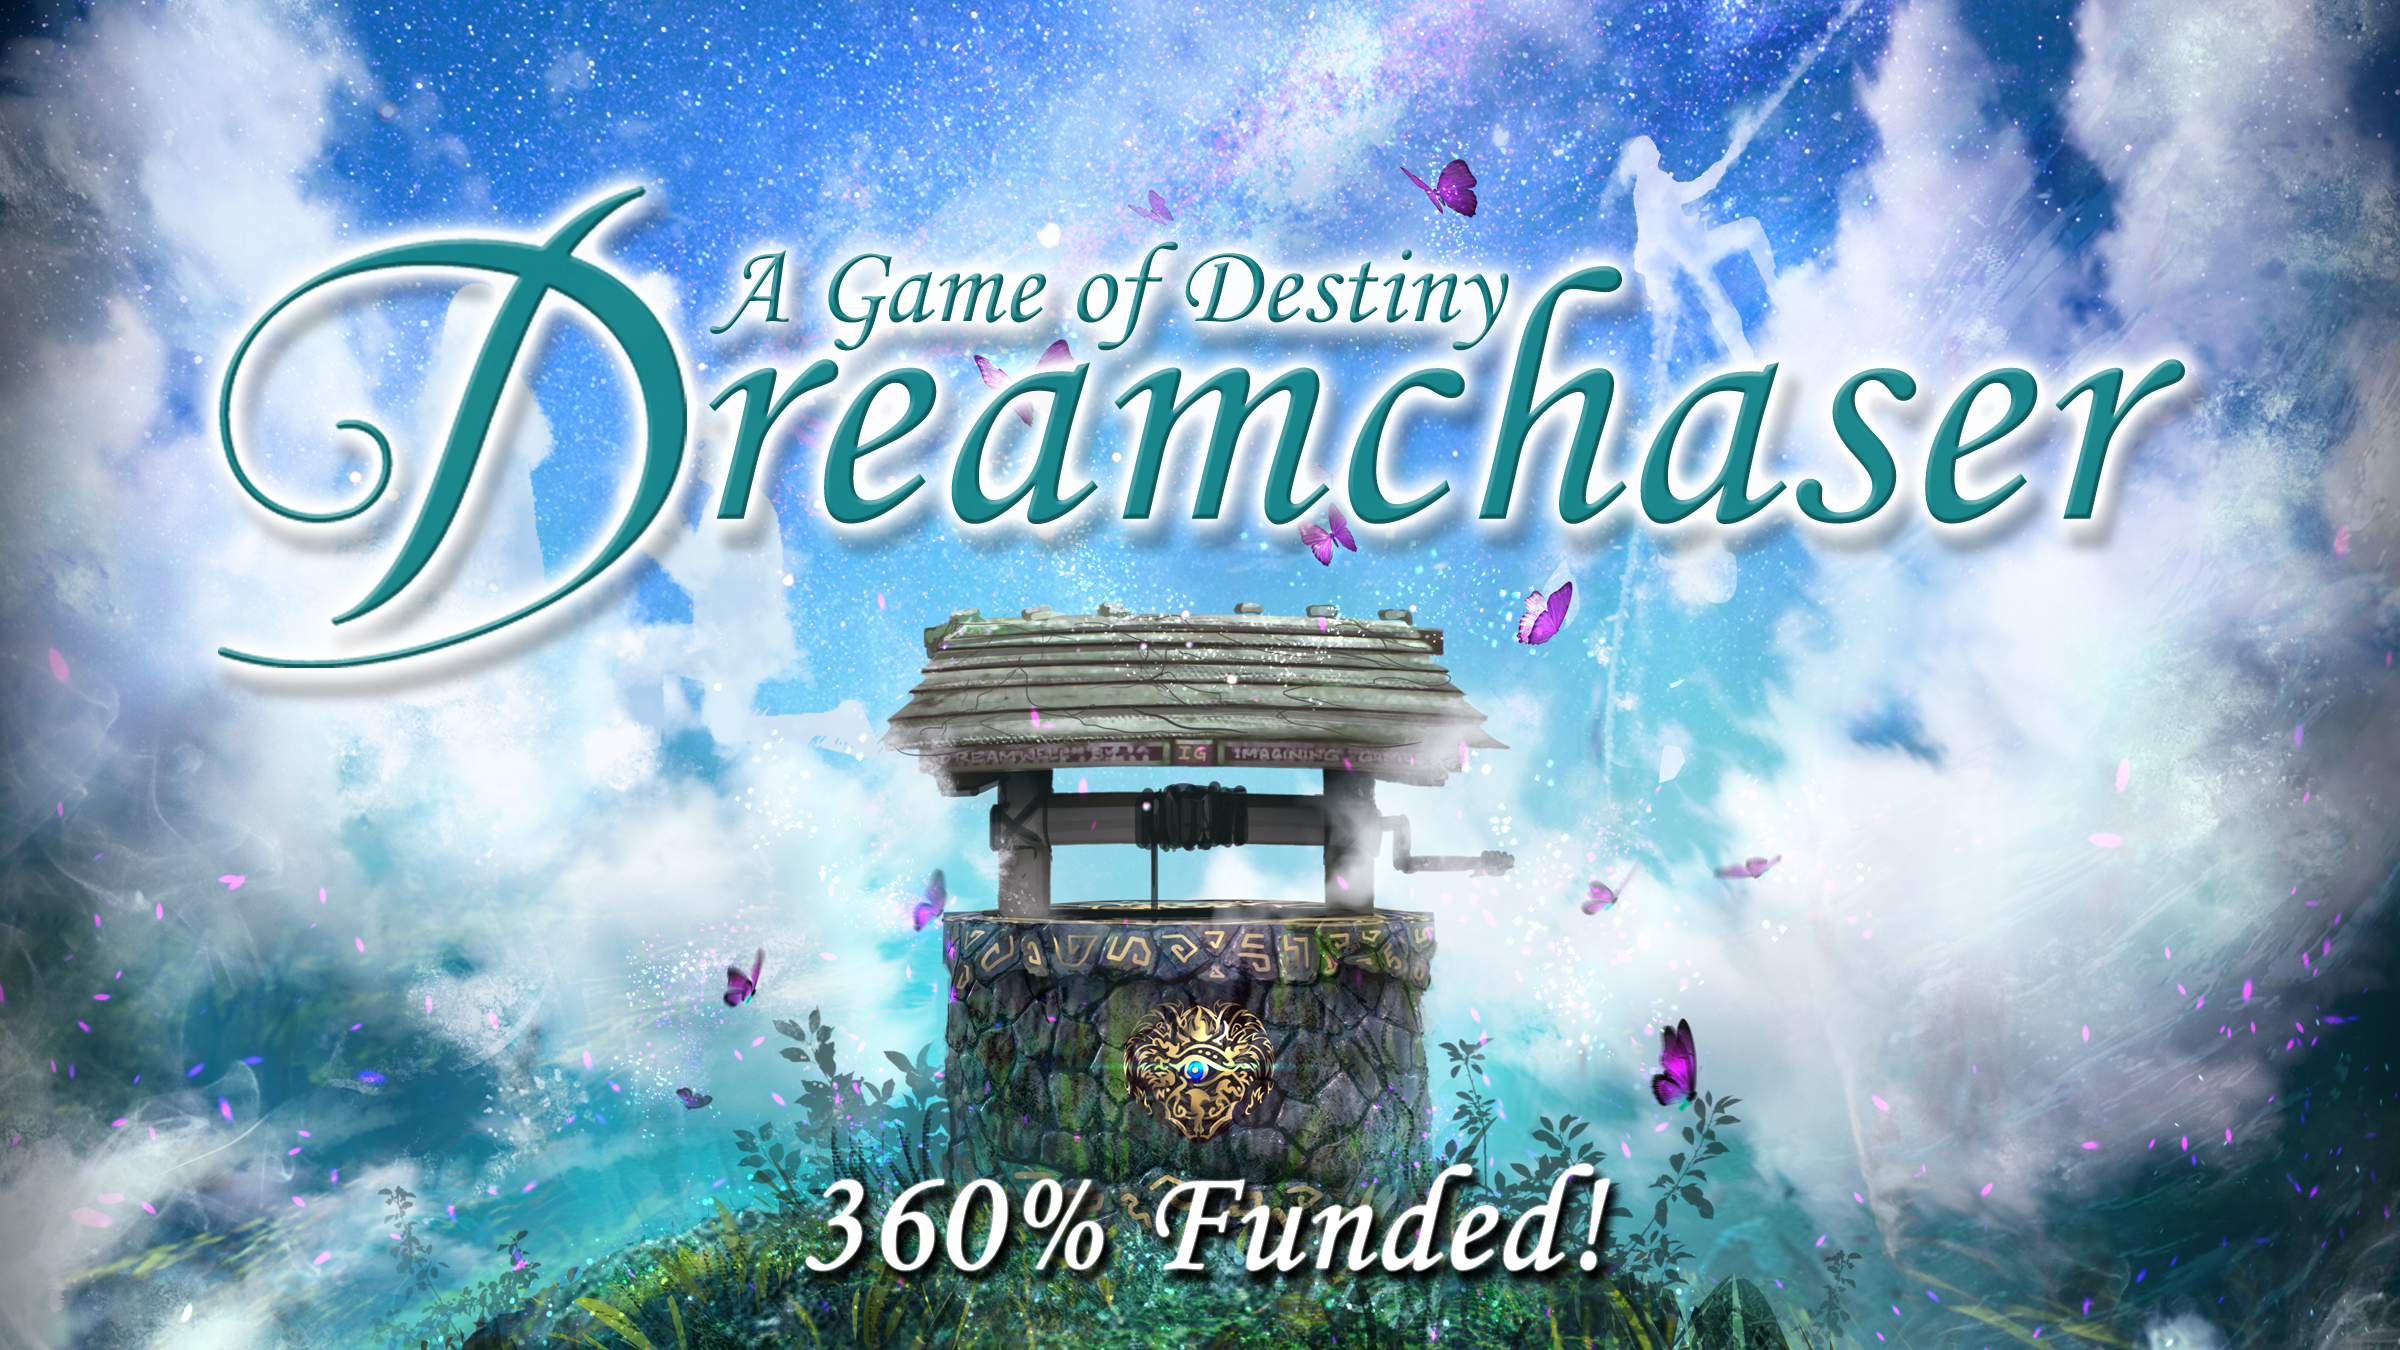 Dreamchaser website banner